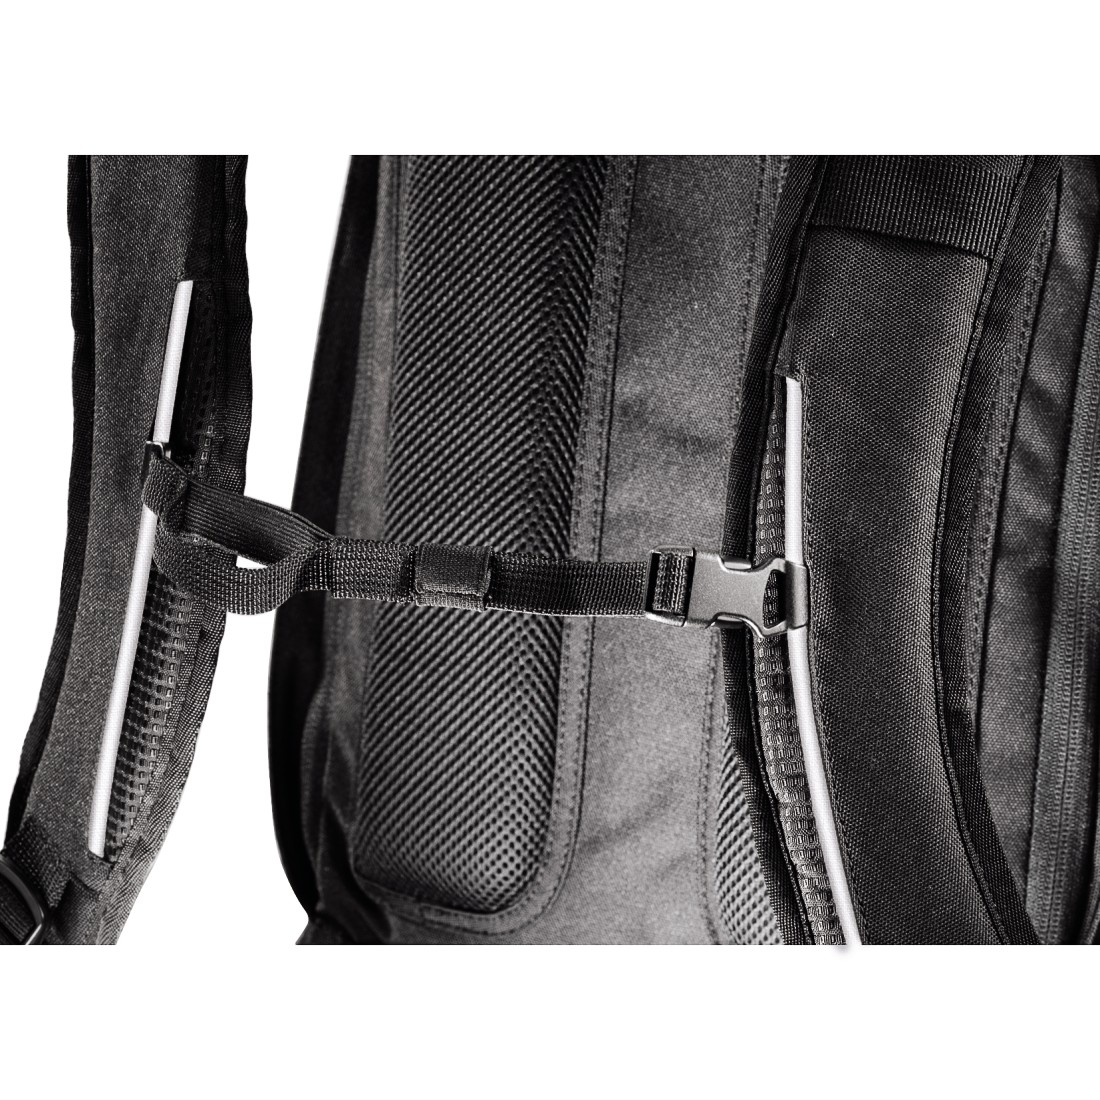 dex3 High-Res Detail 3 - Hama, Daytour Camera Backpack, 180, black